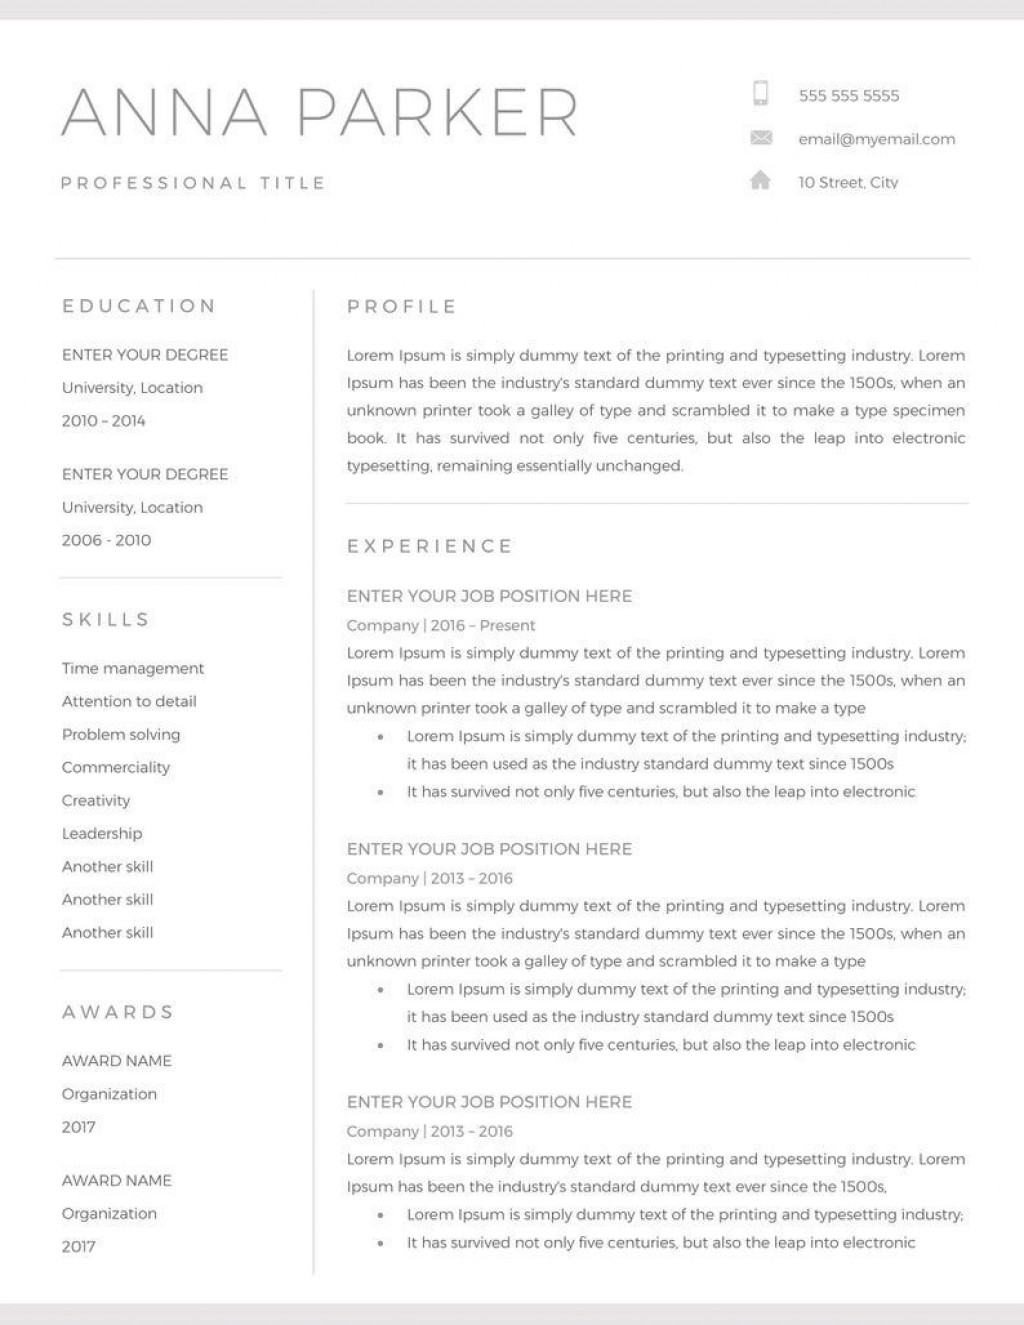 007 Unique Skill Based Resume Template Word Picture  MicrosoftLarge